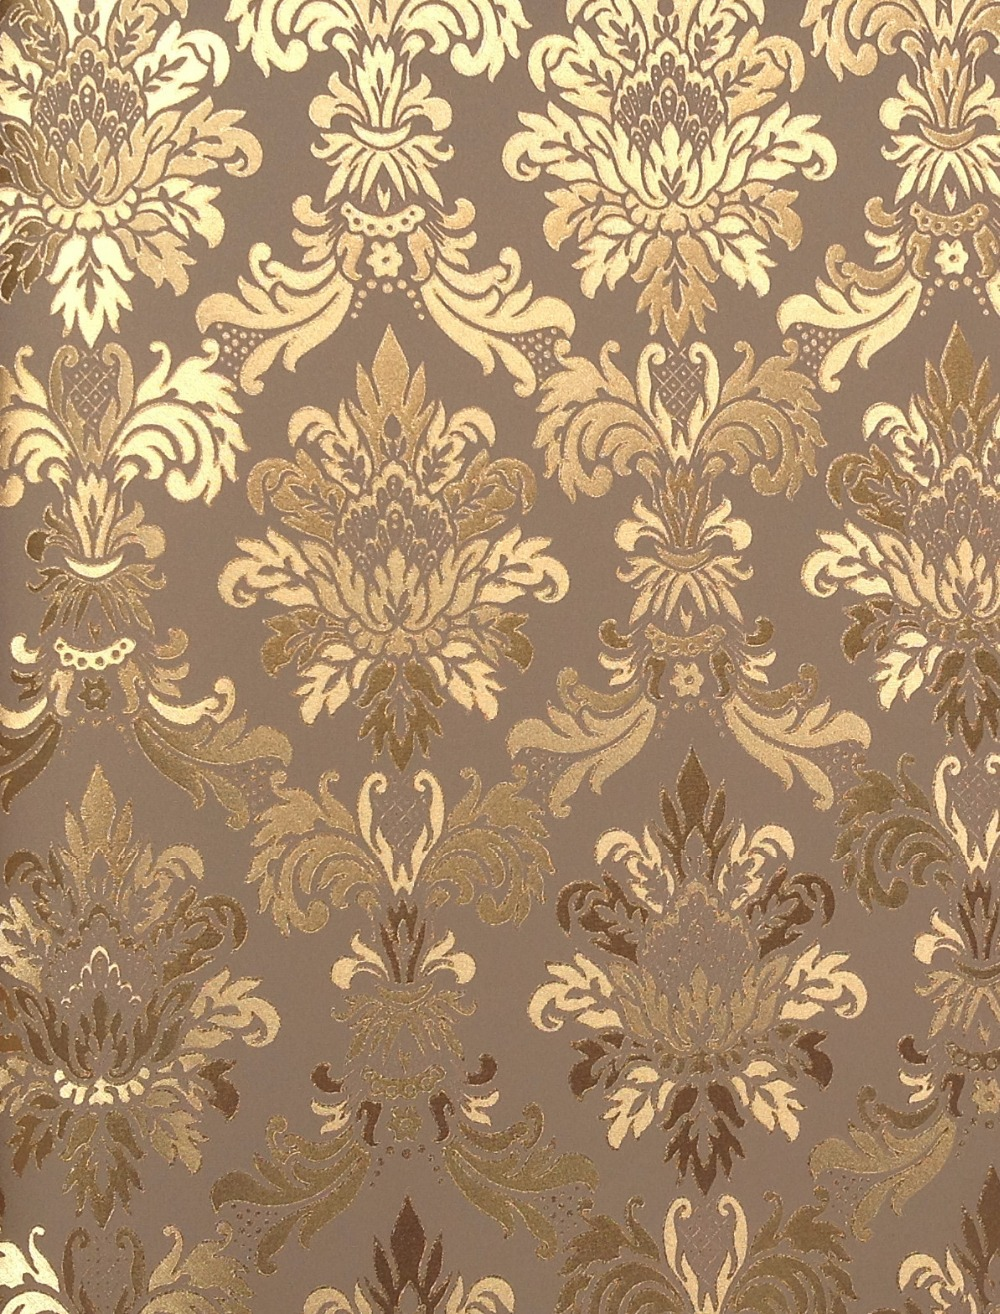 Cy222 gold foil wall paper chinese style vinyl wall paper for Vinyl wallpaper for walls